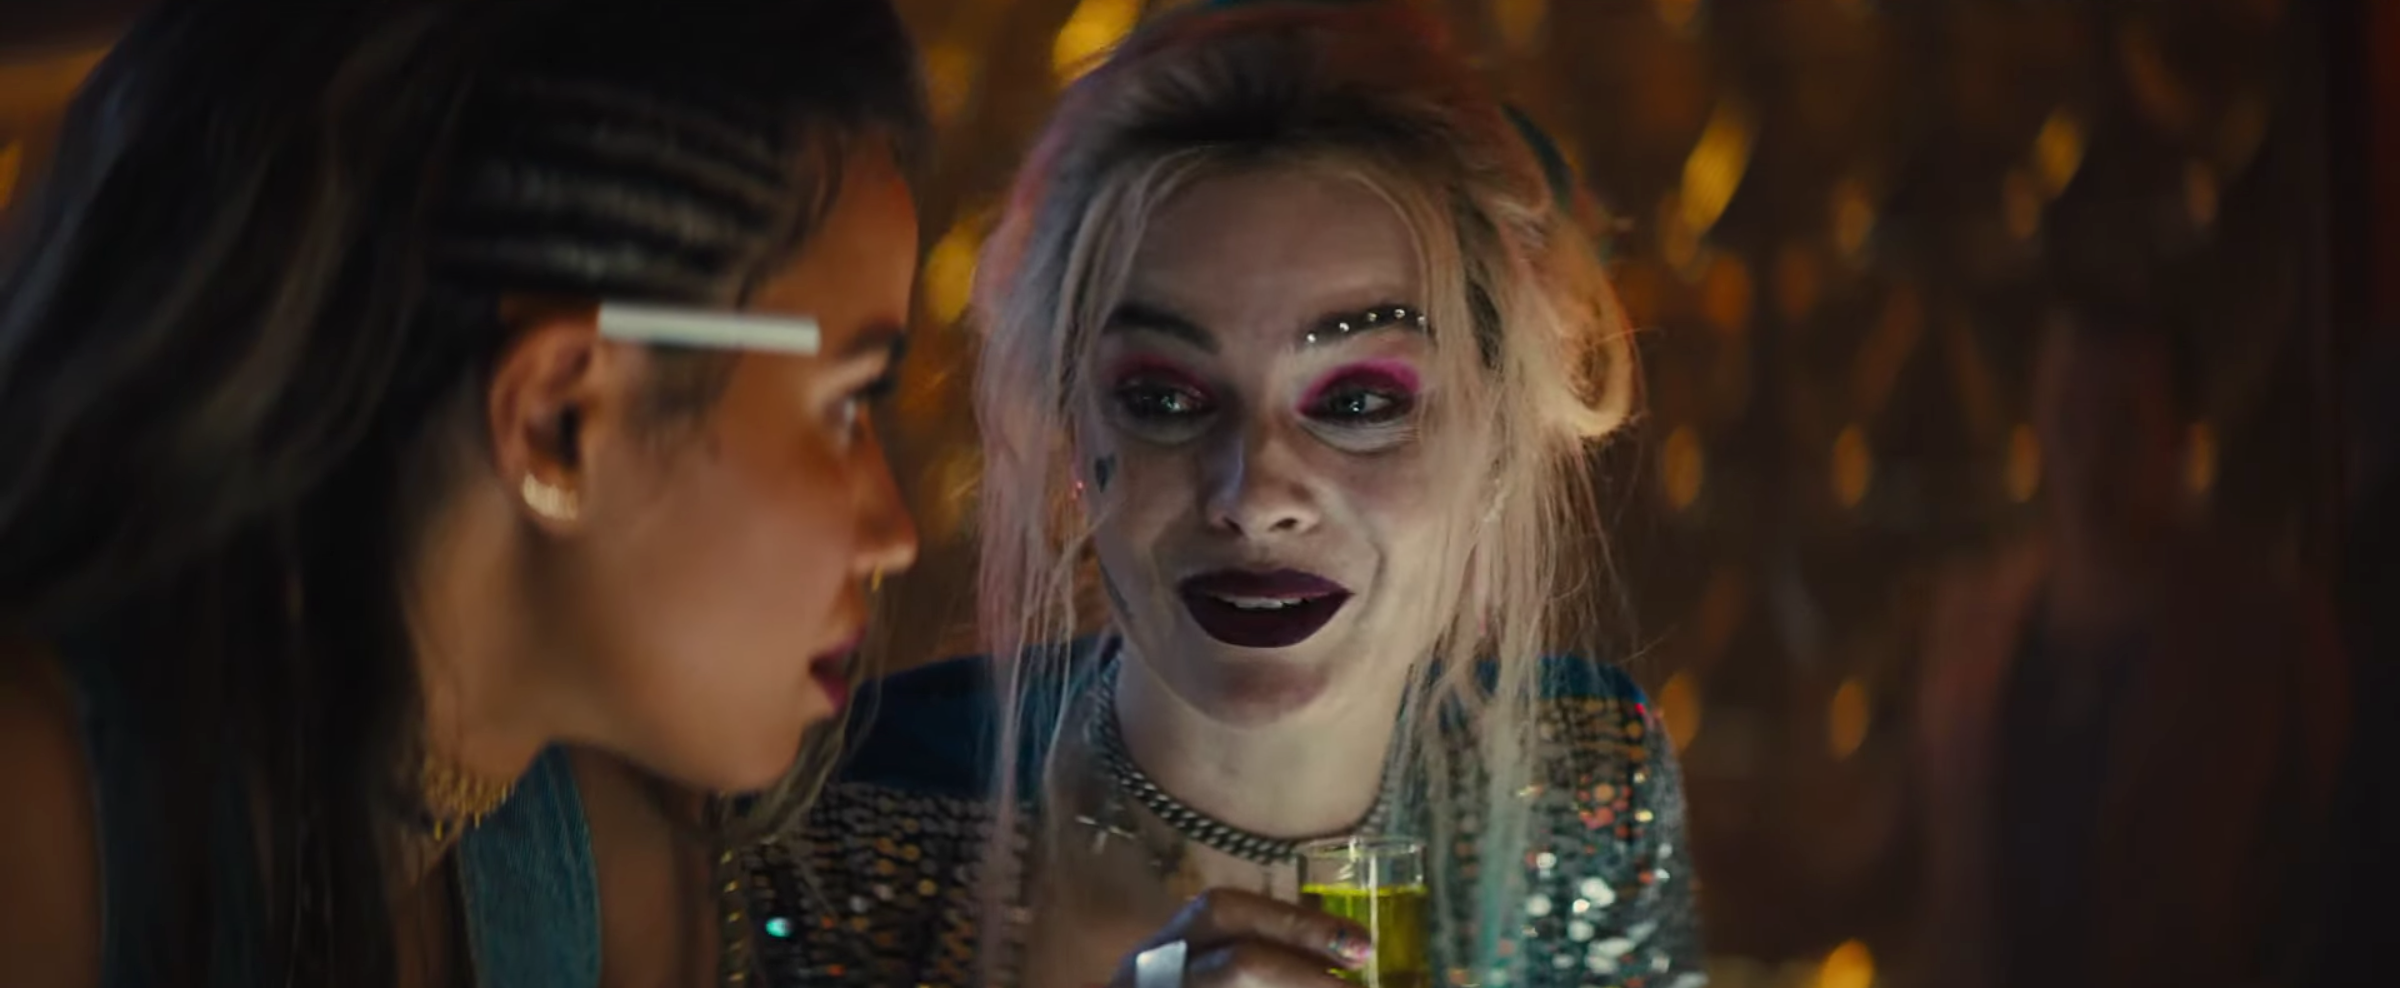 40 New Birds Of Prey Trailer Images Featuring Harley Quinn Collider